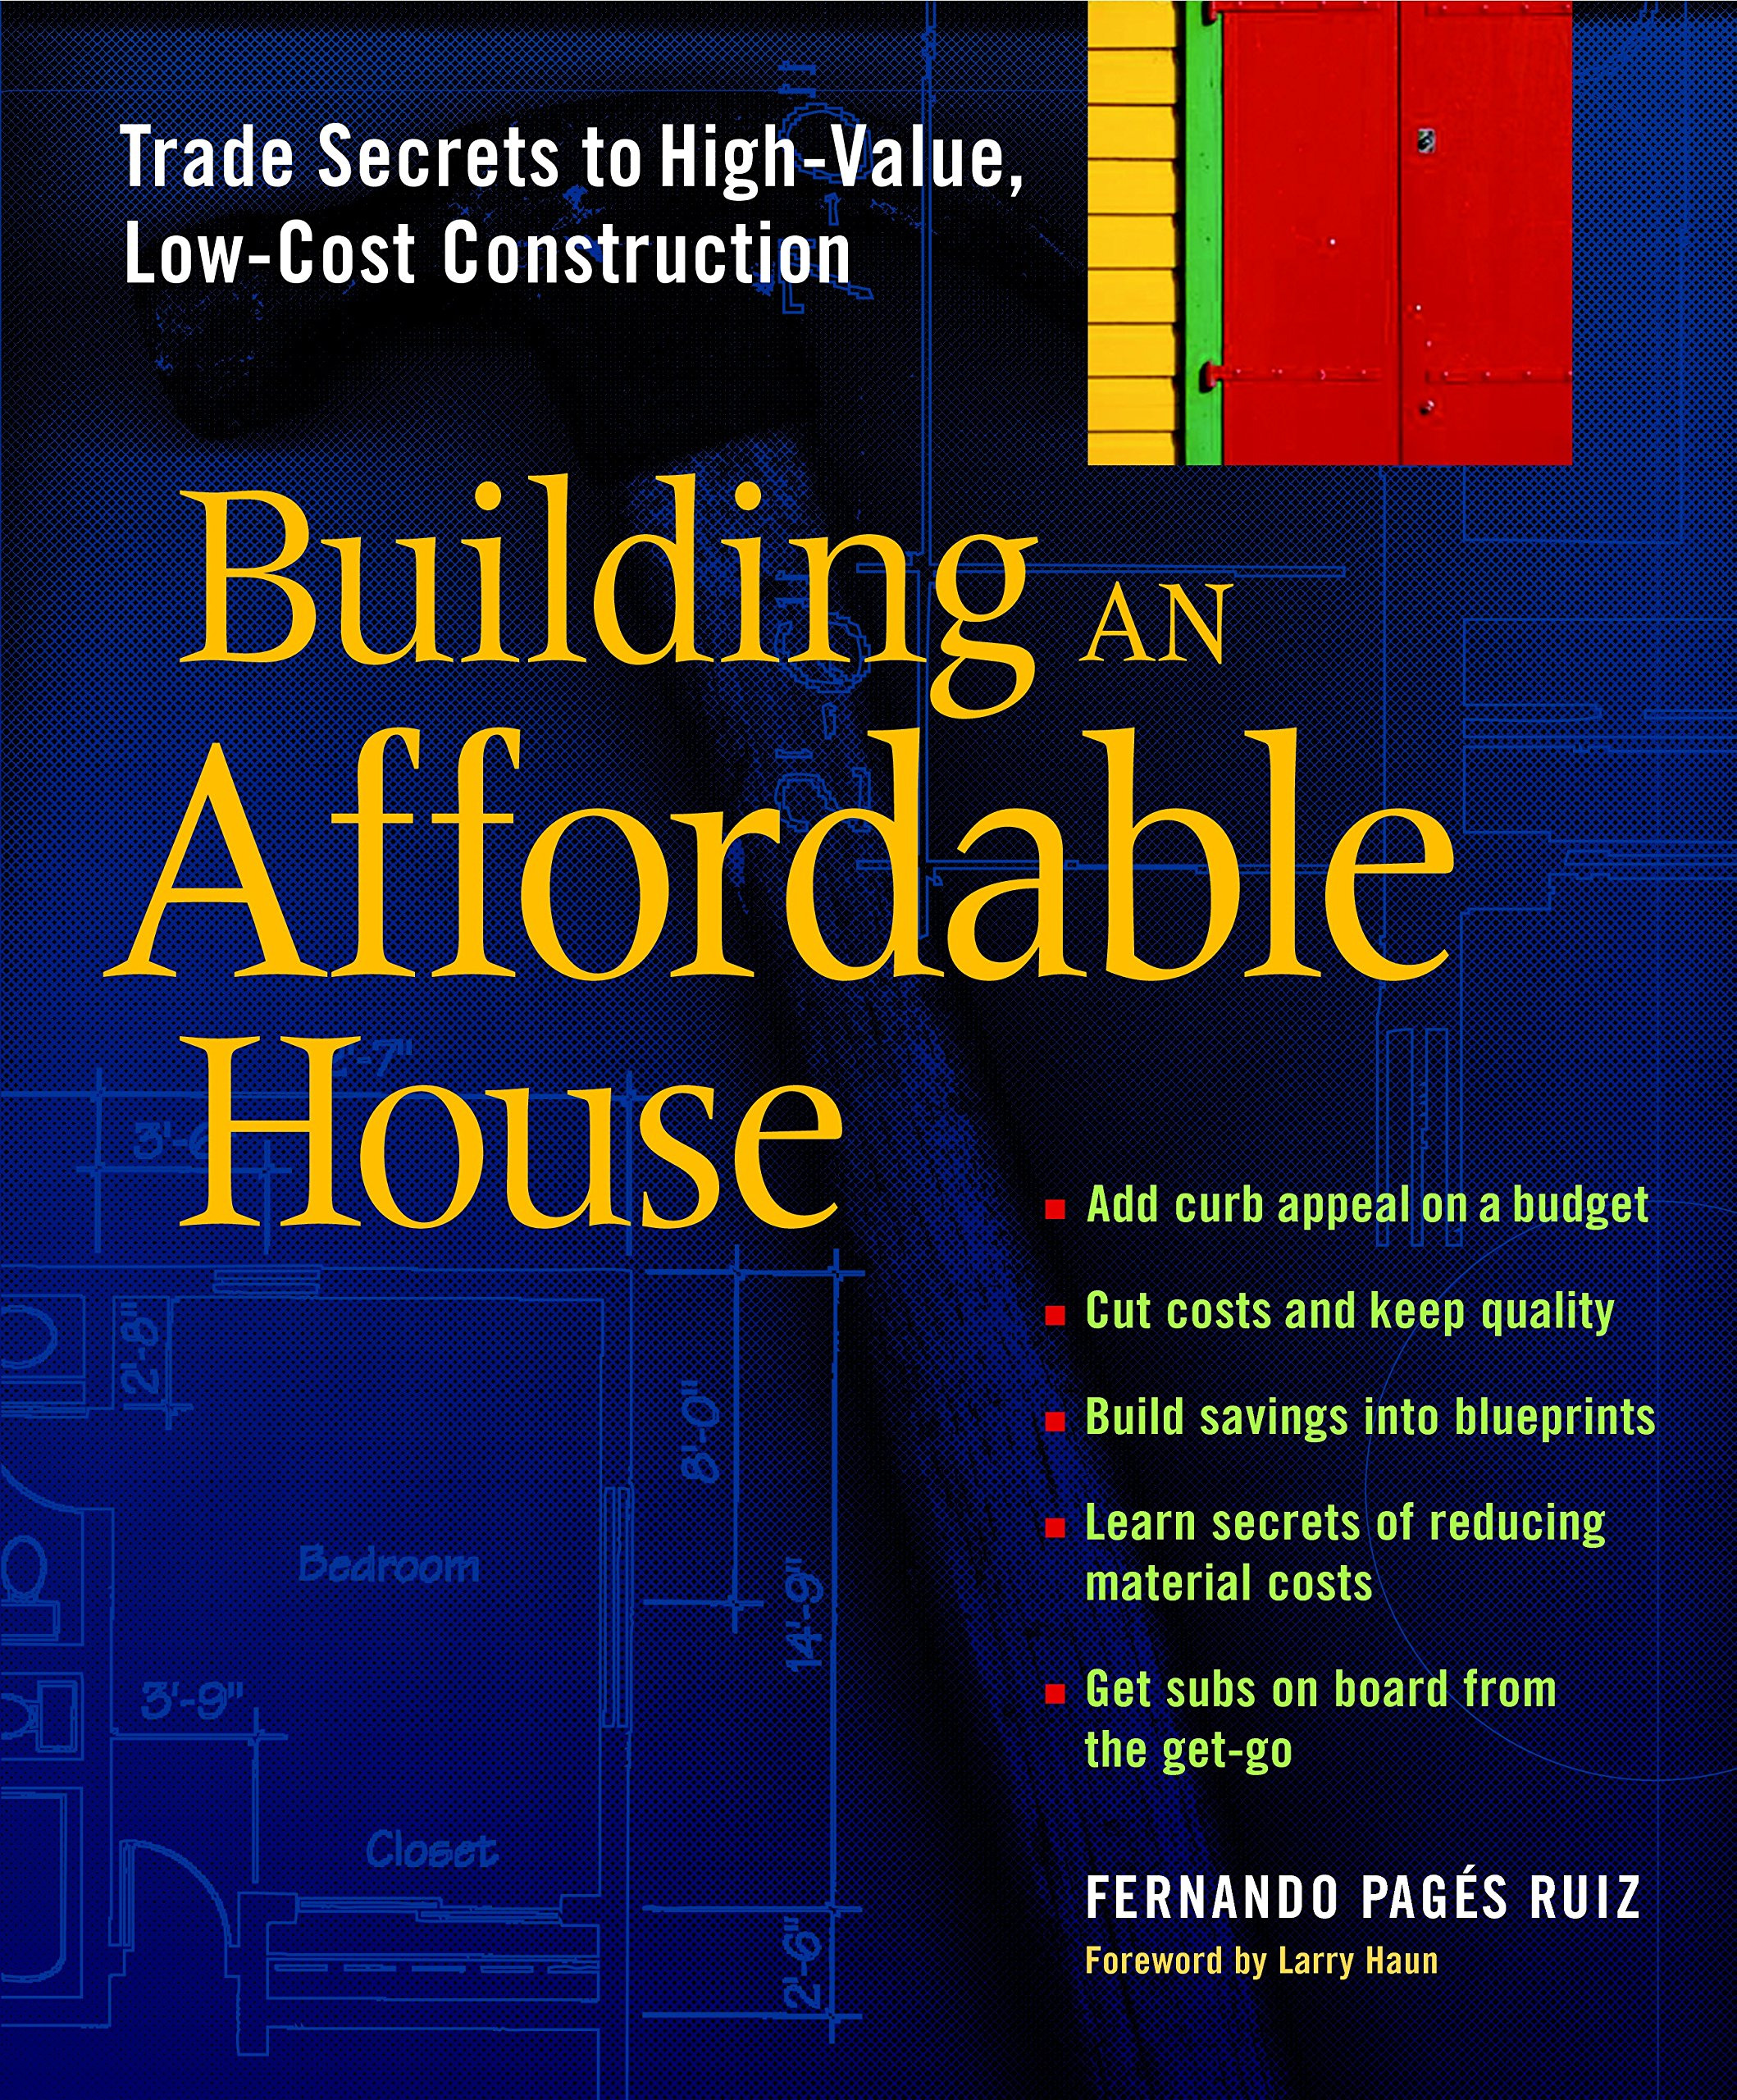 Building An Affordable House Beautiful Building An Affordable House Trade Secrets to High Value